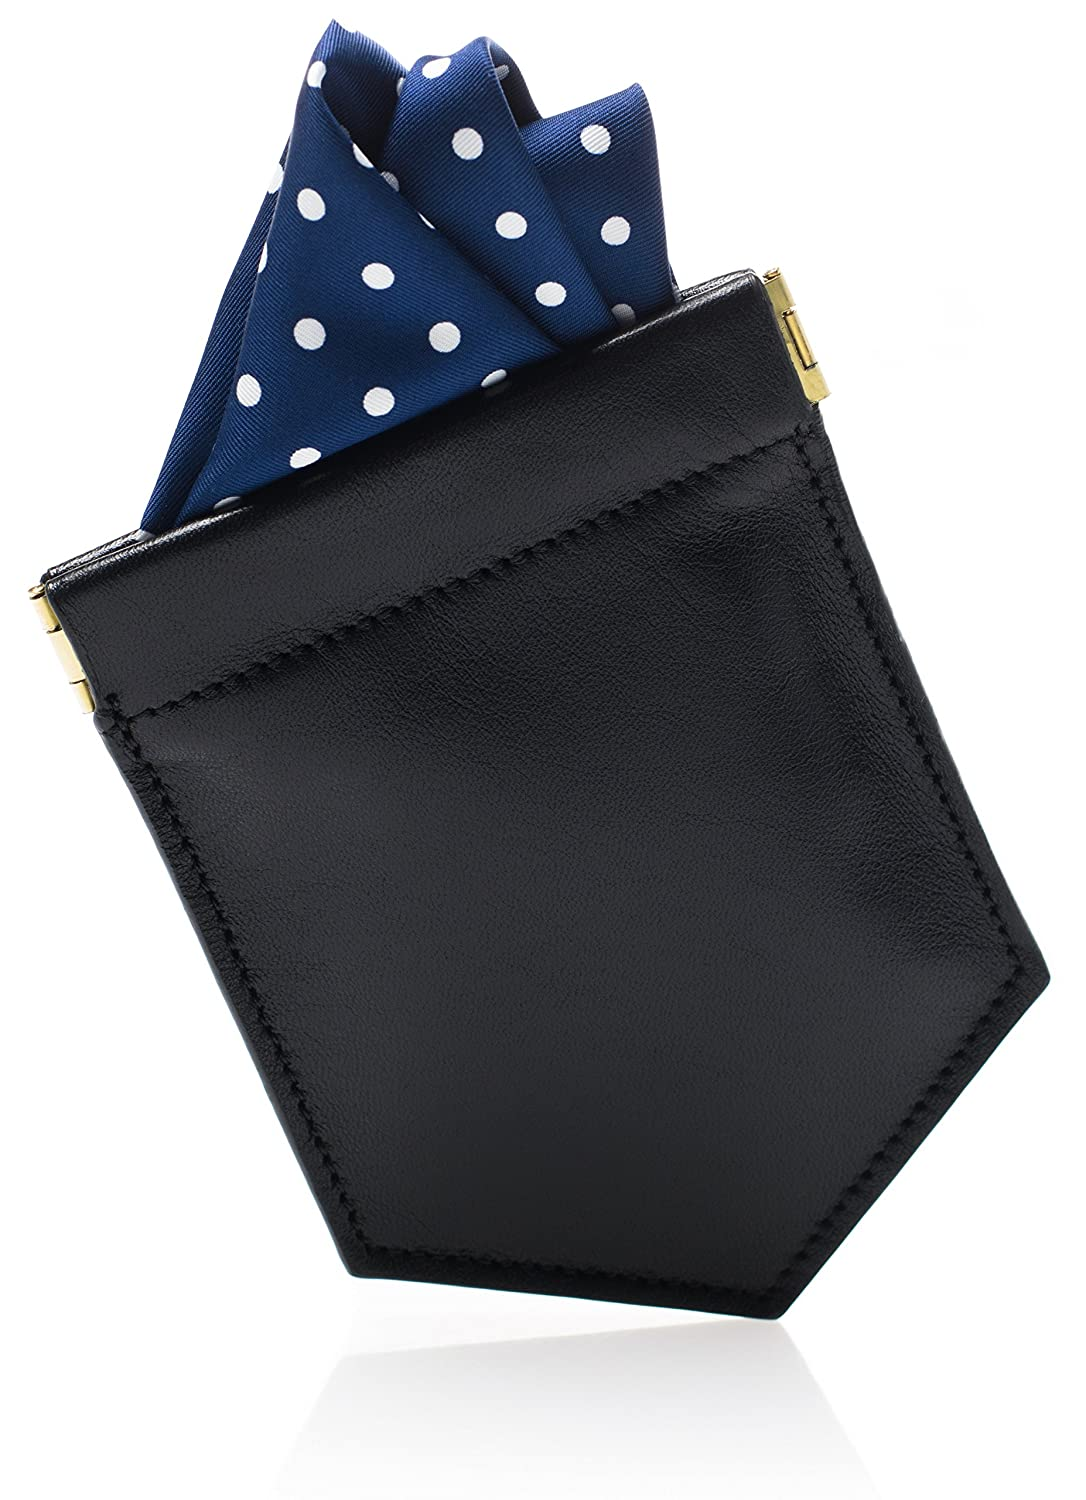 Pocket Square Holder & Men's Fashion Accessory to Hold the Handkerchief Fold - Slim Black Leather Design - Fits all Handkerchiefs & Suit Jackets - Great Gift